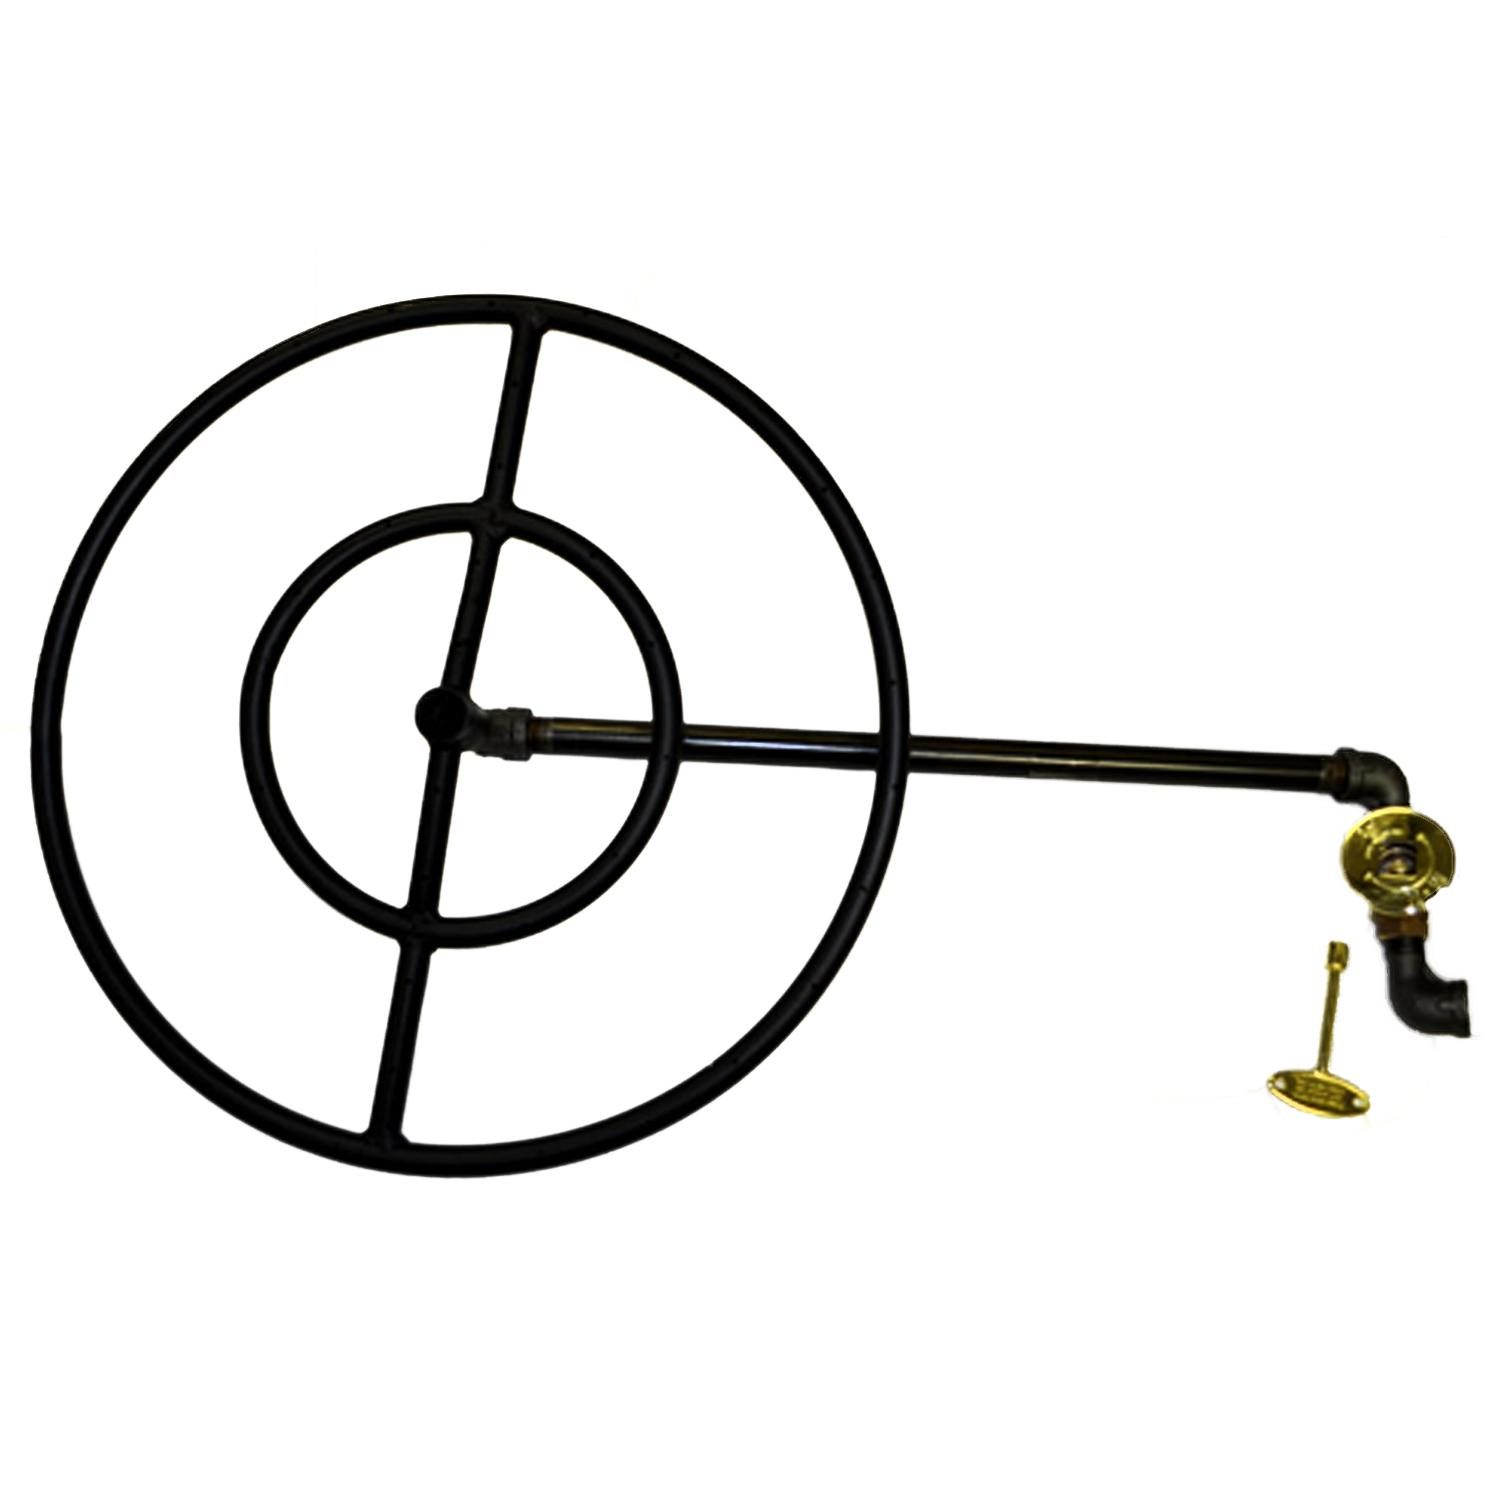 Hpc 30 Inch Natural Gas Fire Pit Kit With Round Black Steel Ring Burner Match Light Gas Fire Pit Kit Natural Gas Fire Pit Gas Fire Pit Insert